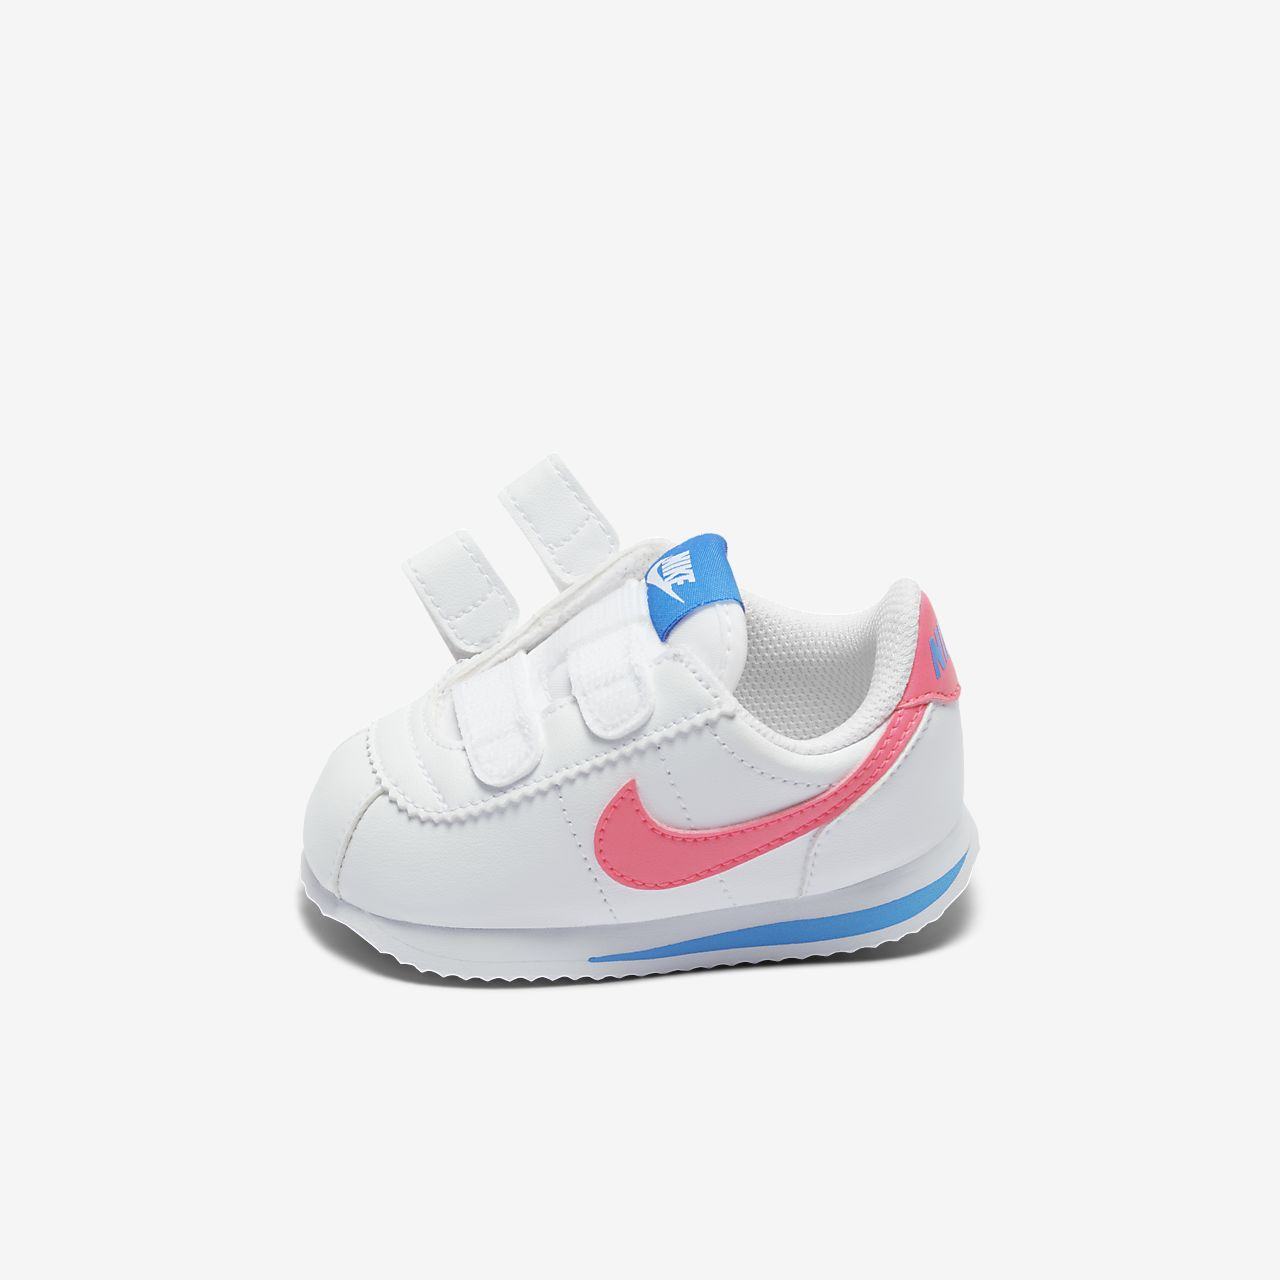 buy online 0657e 226a1 ... Nike Cortez Basic SL Baby   Toddler Shoe